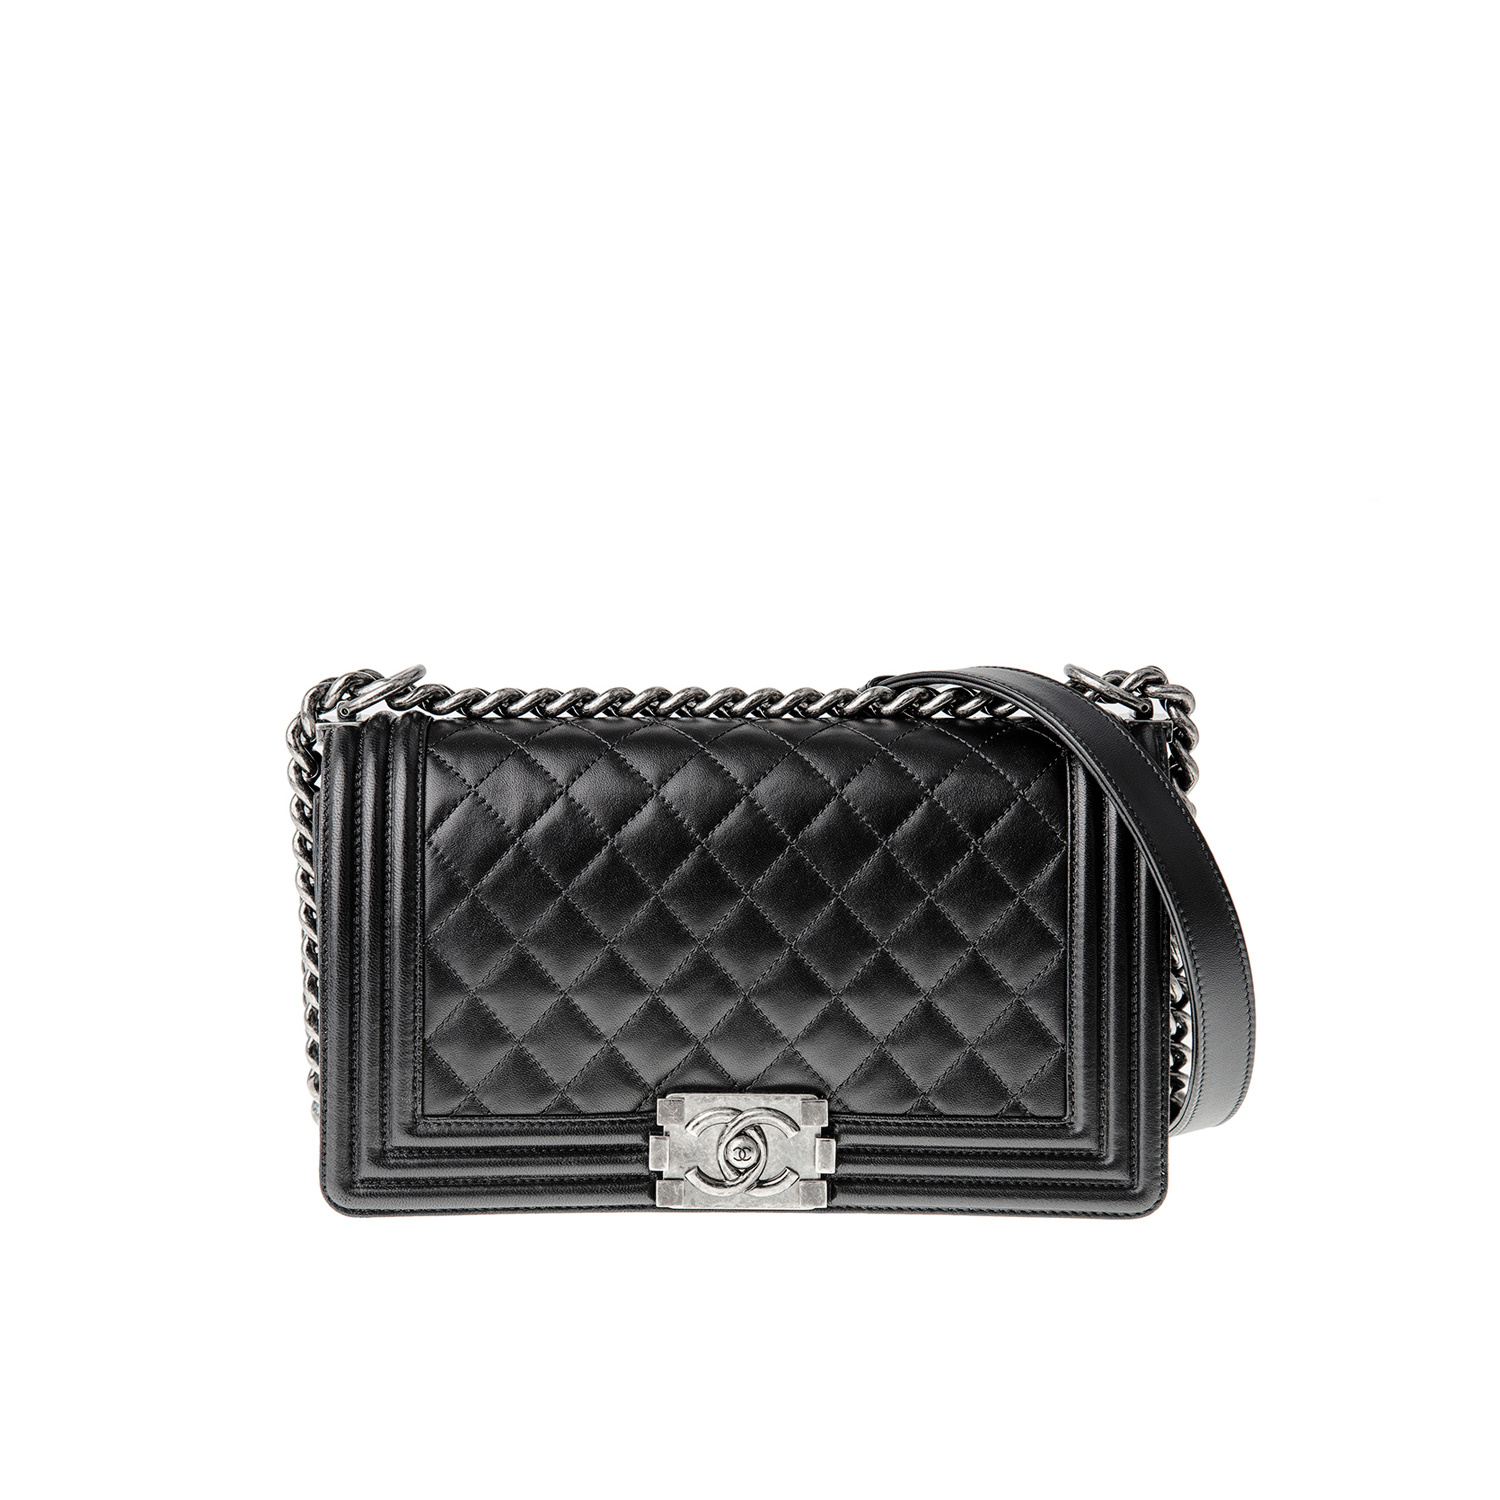 Handbag for rent Boy Chanel